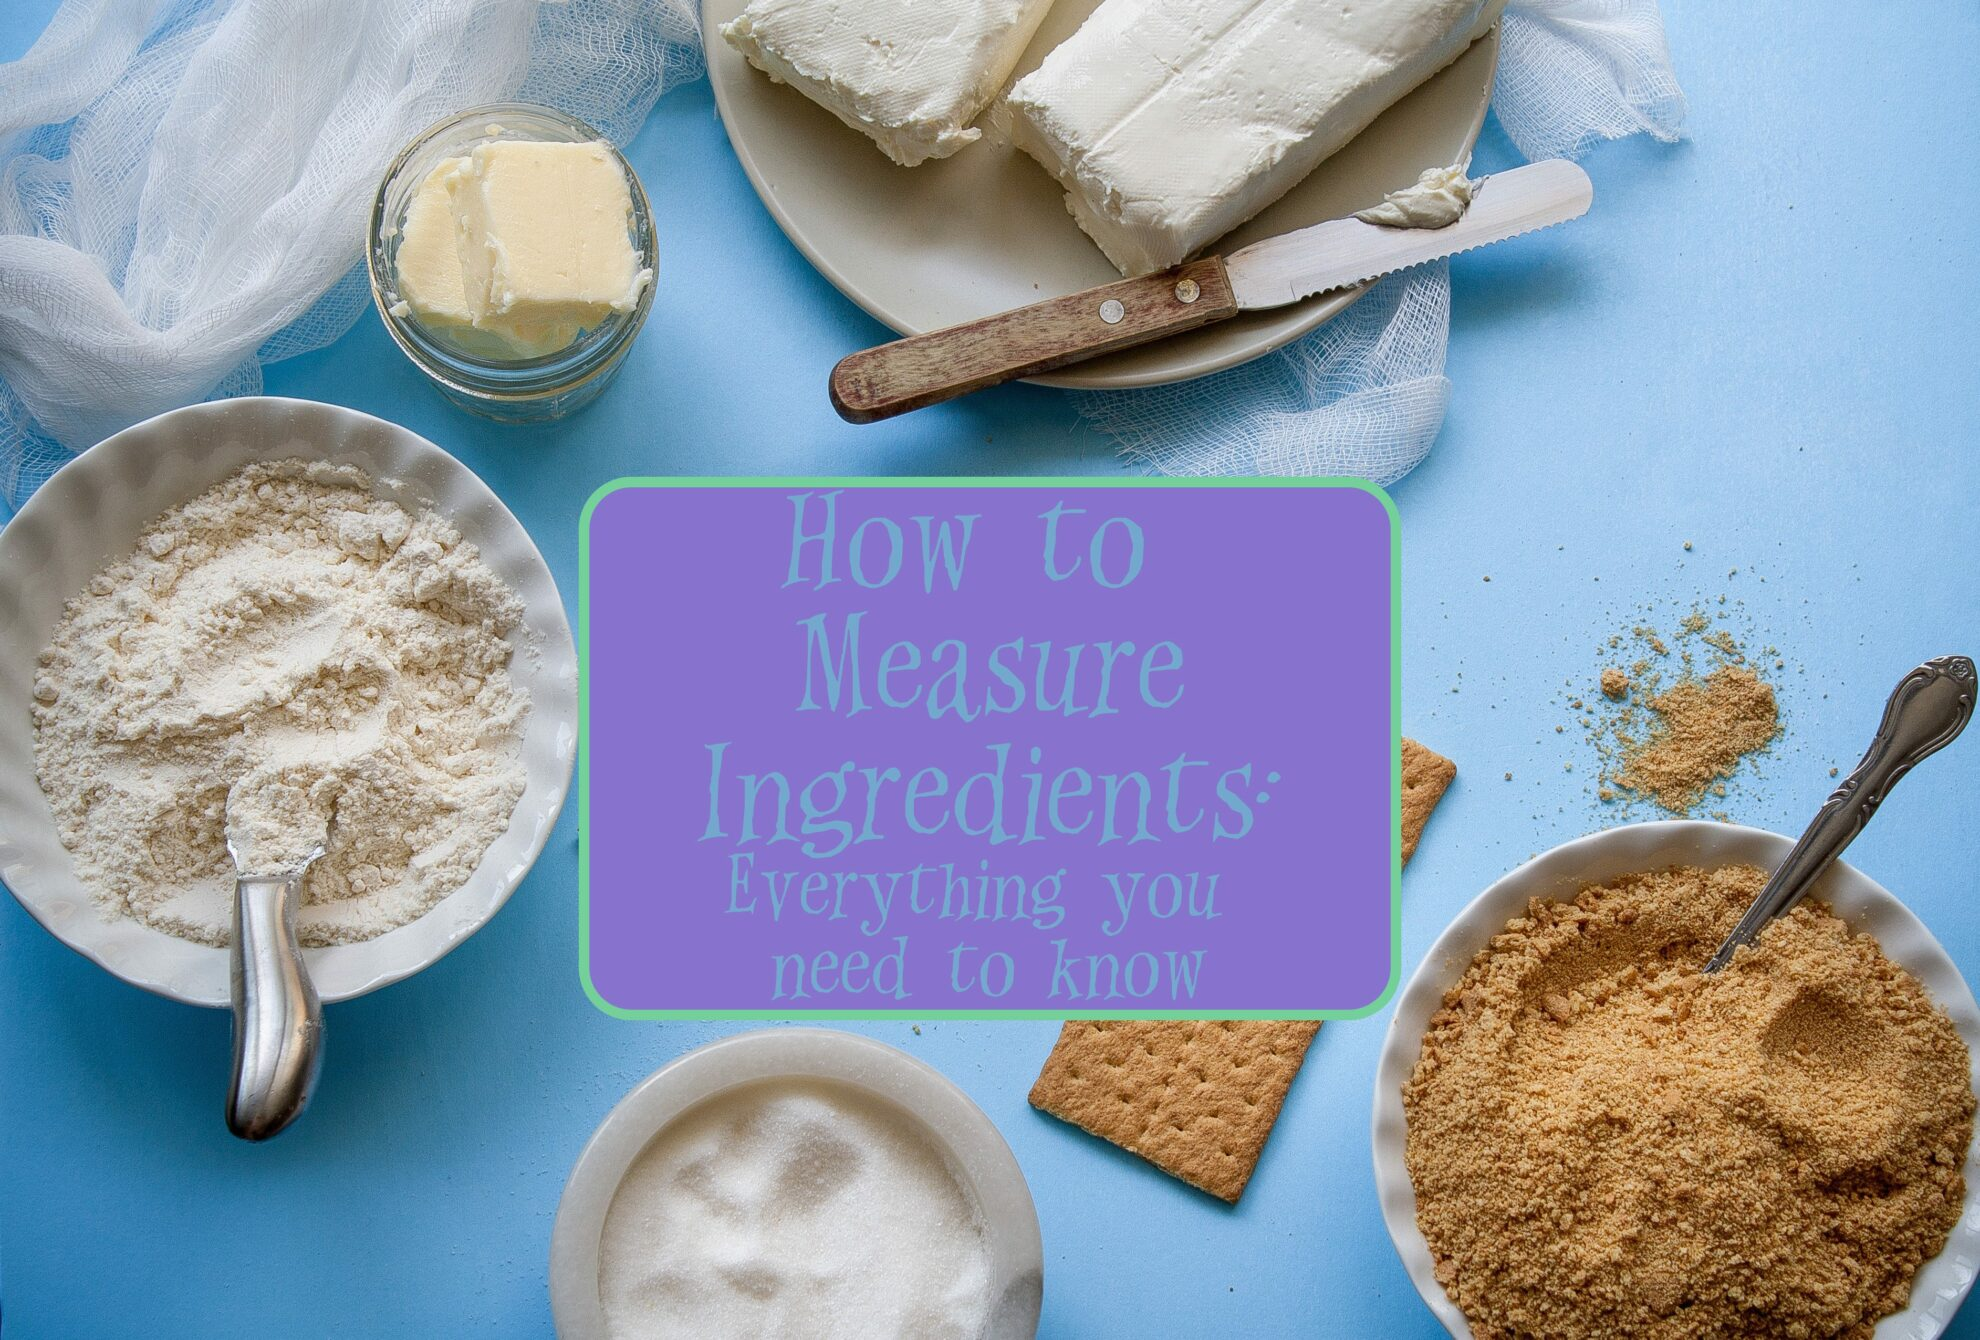 How to measure ingredients accurately: everything you need to know. Are dry and wet ingredients measured the same? Is flour supposed to be packed or sifted? Are you supposed to weigh flour? Plus link to 2 free printables for cooking & measurements.